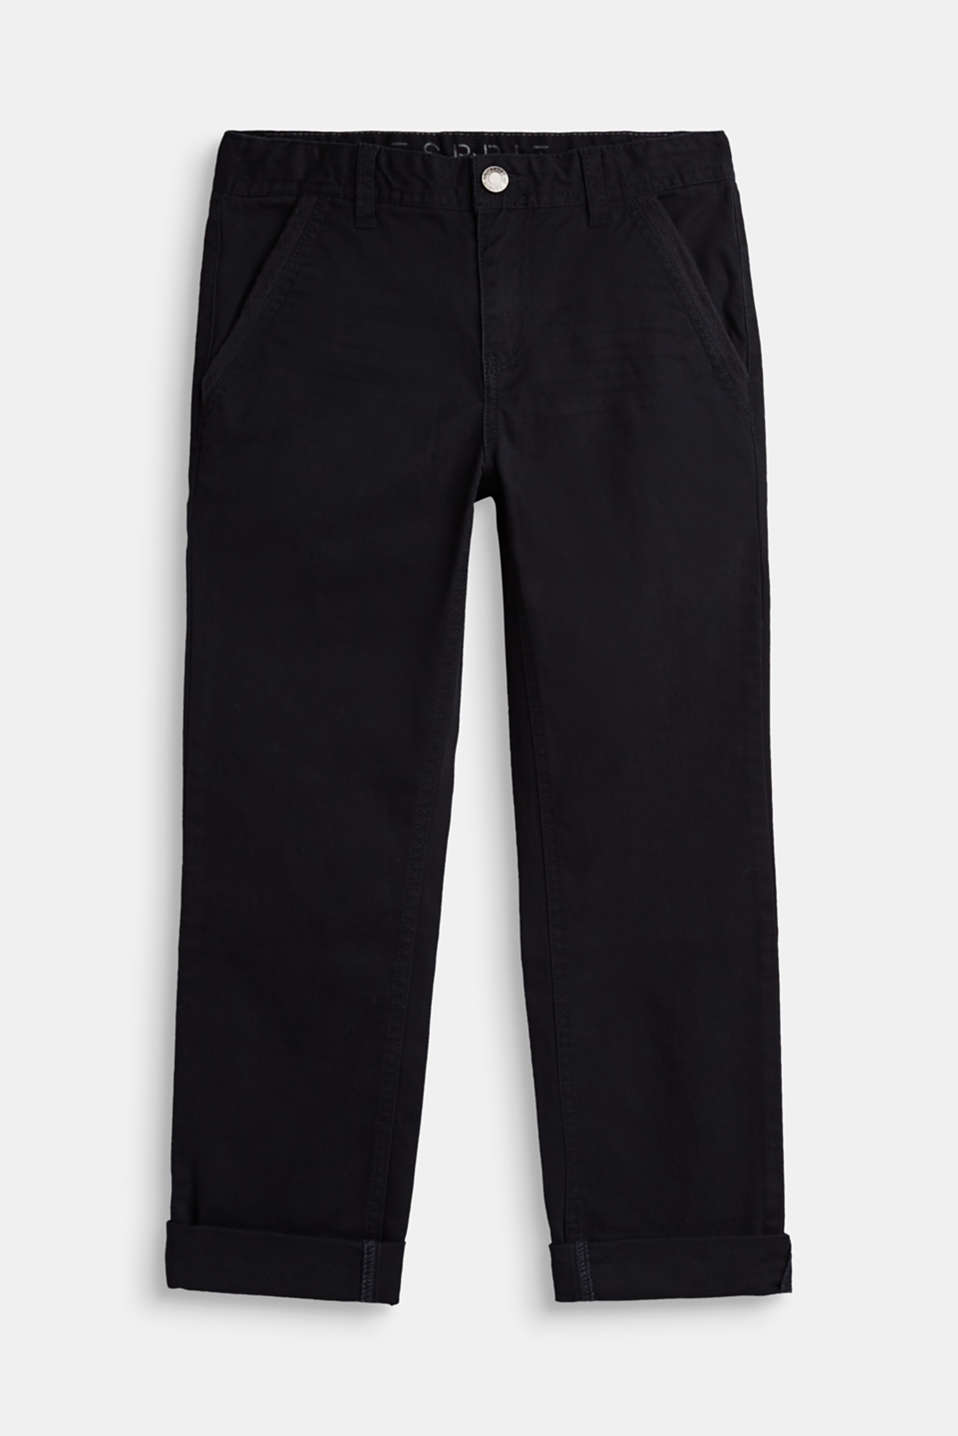 Esprit - Stretch-Pants mit cleanem Design